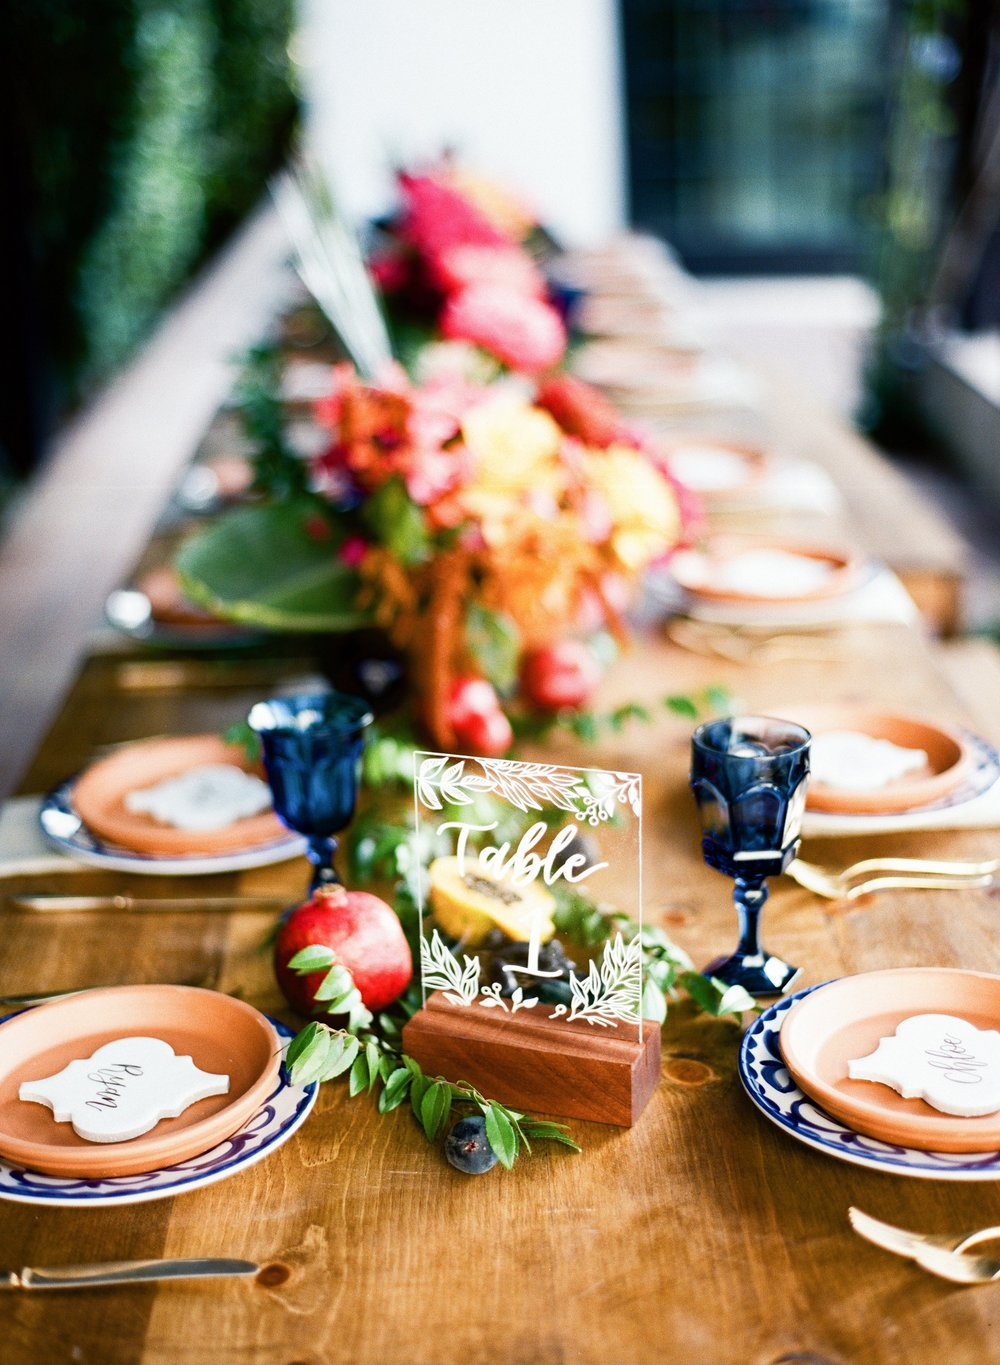 Sage Bleu Catering outdoor table setting with pottery plates and beautiful florals.